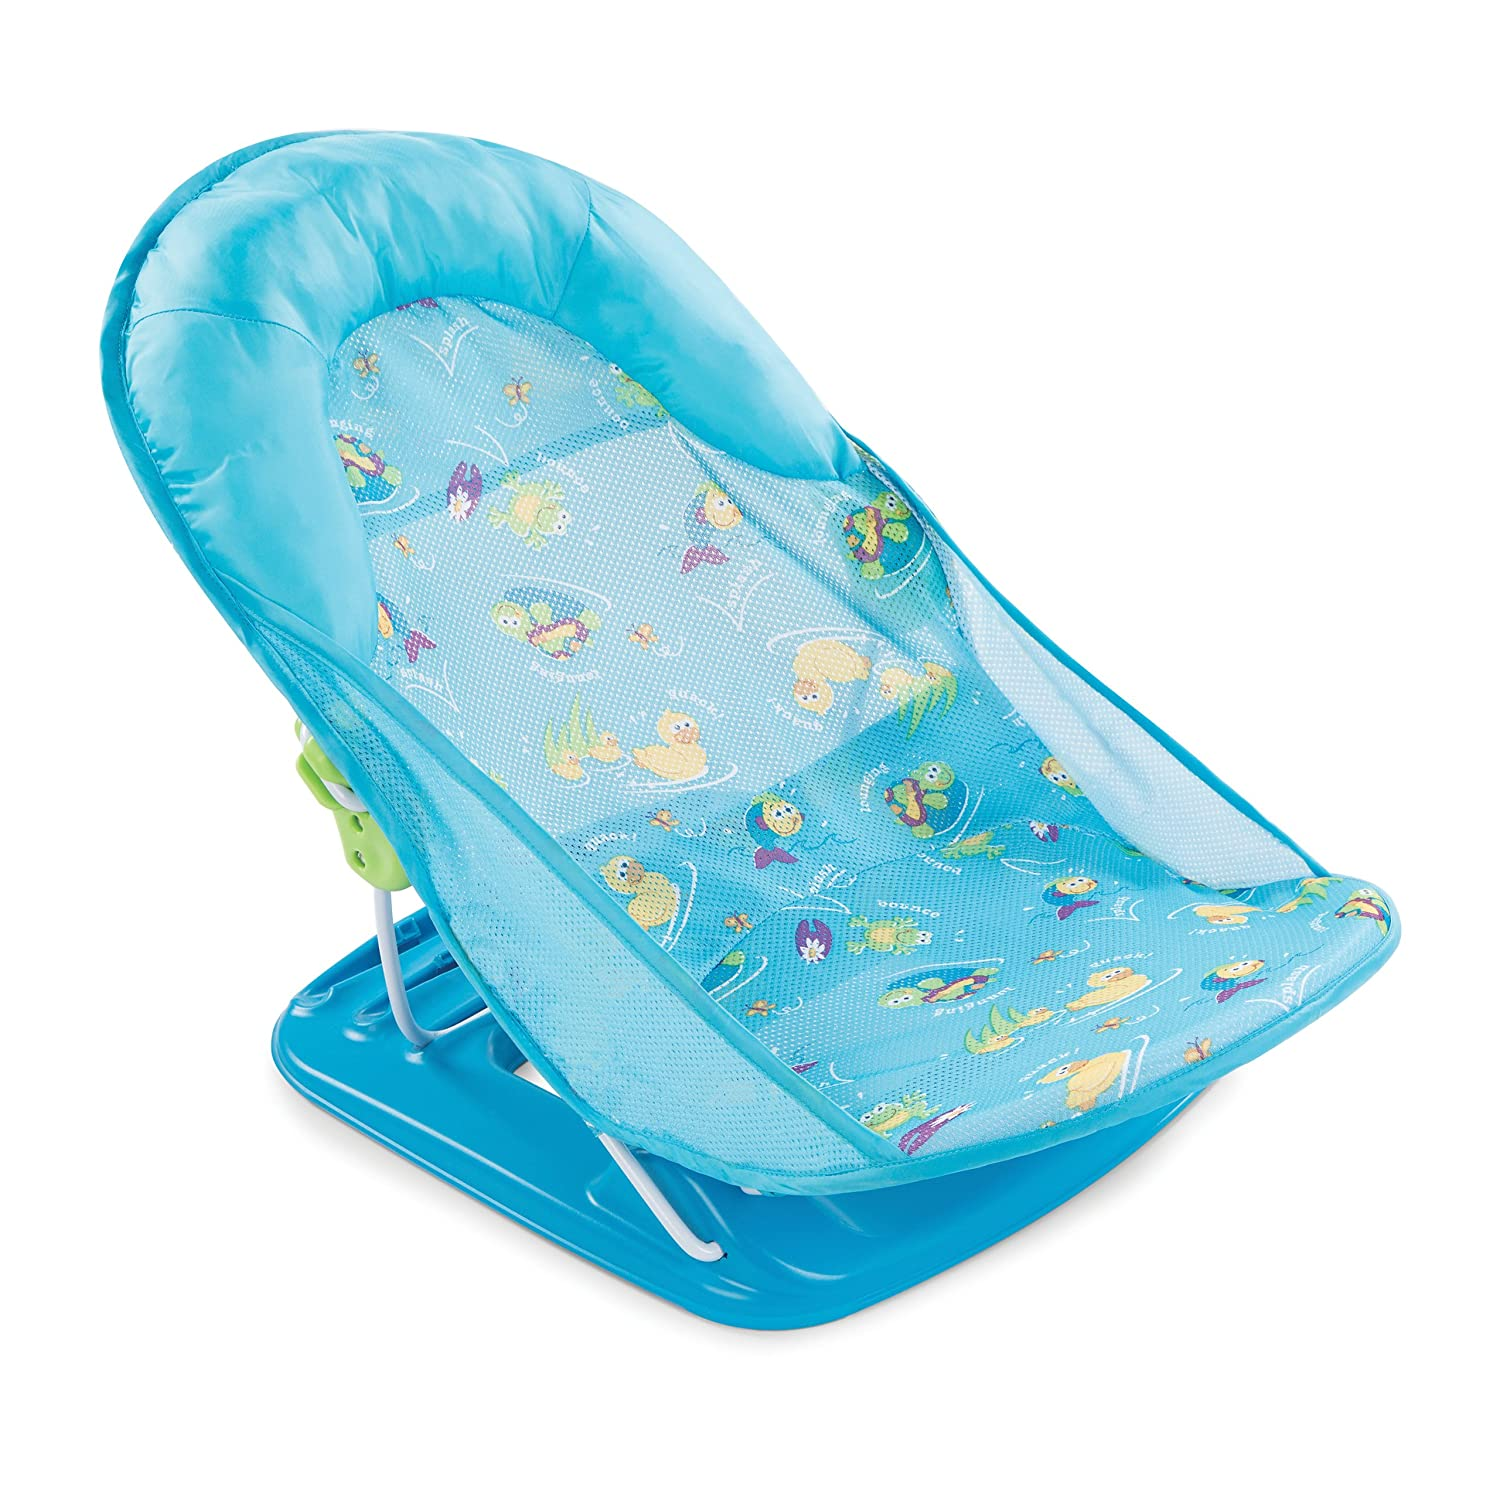 Baby bath chairs for the tub - Summer Infant Deluxe Baby Bather Blue